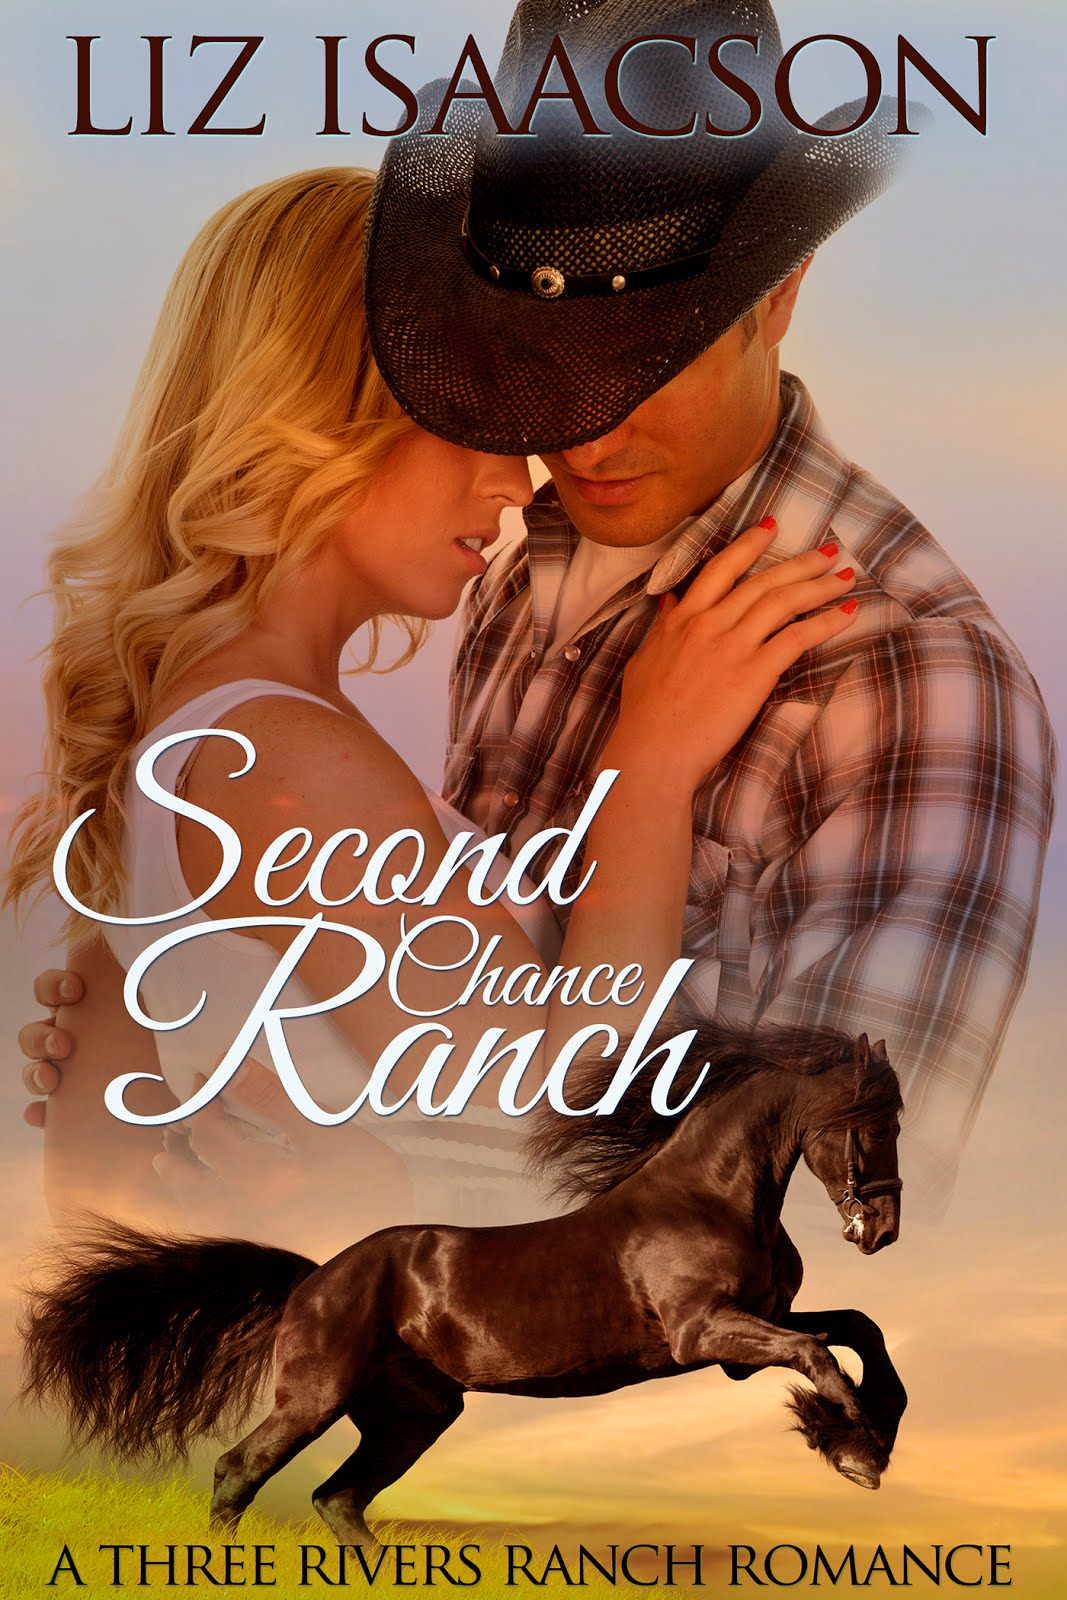 Buy SECOND CHANCE RANCH